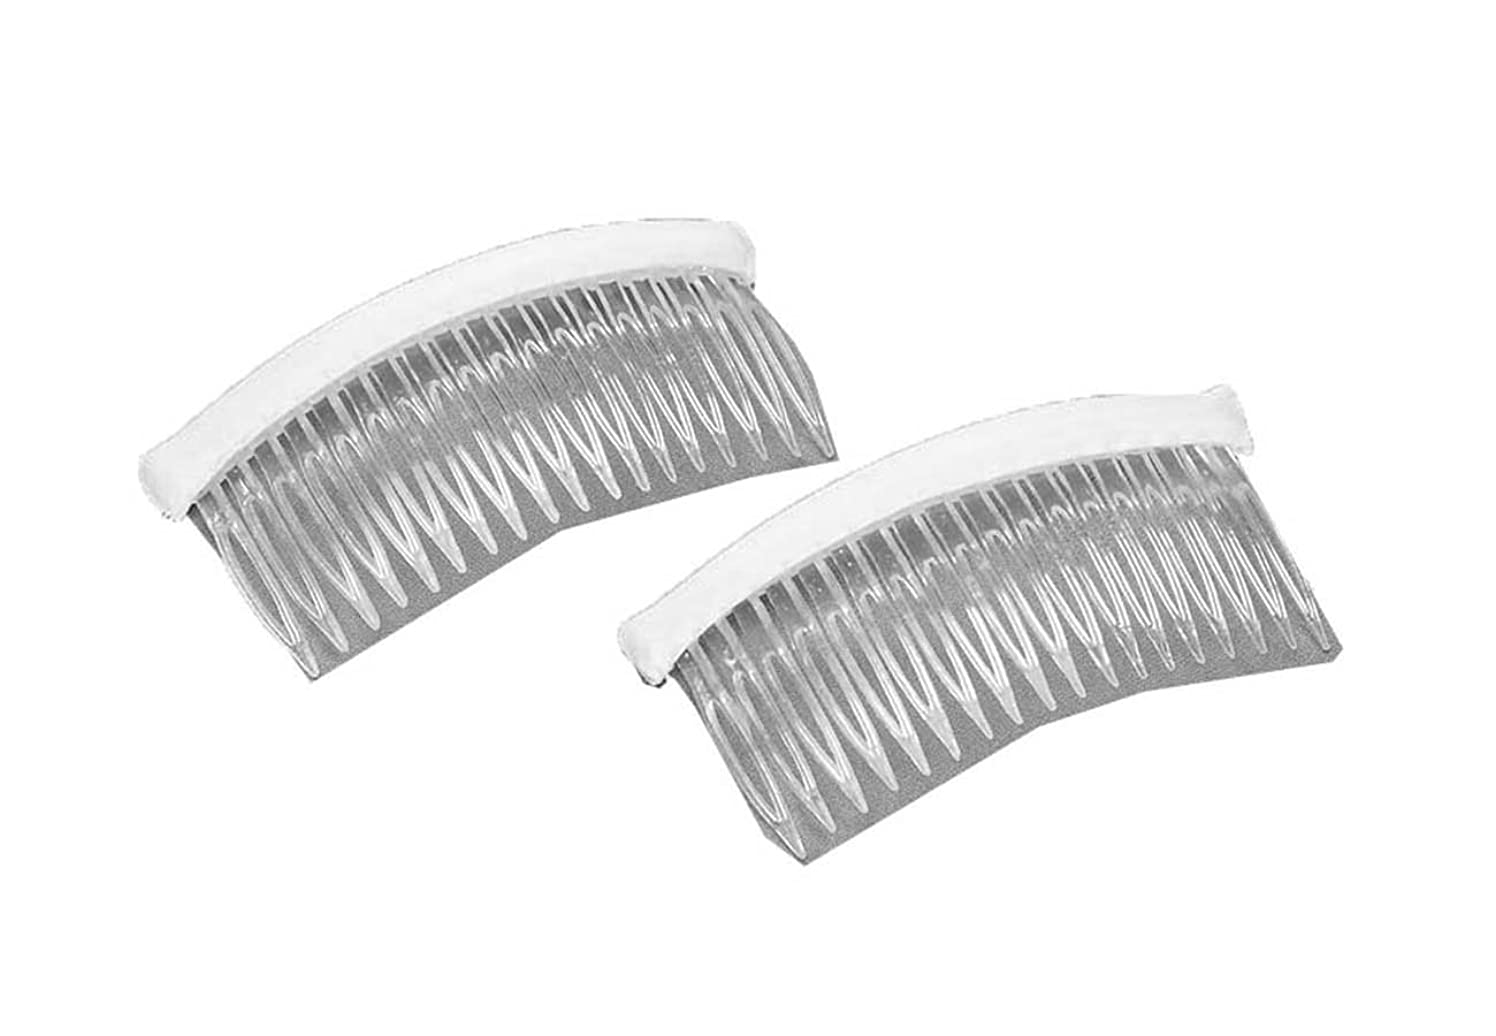 Darice VL5628, Fab Edge Haircomb Plastic 4-Inch, 2-Piece